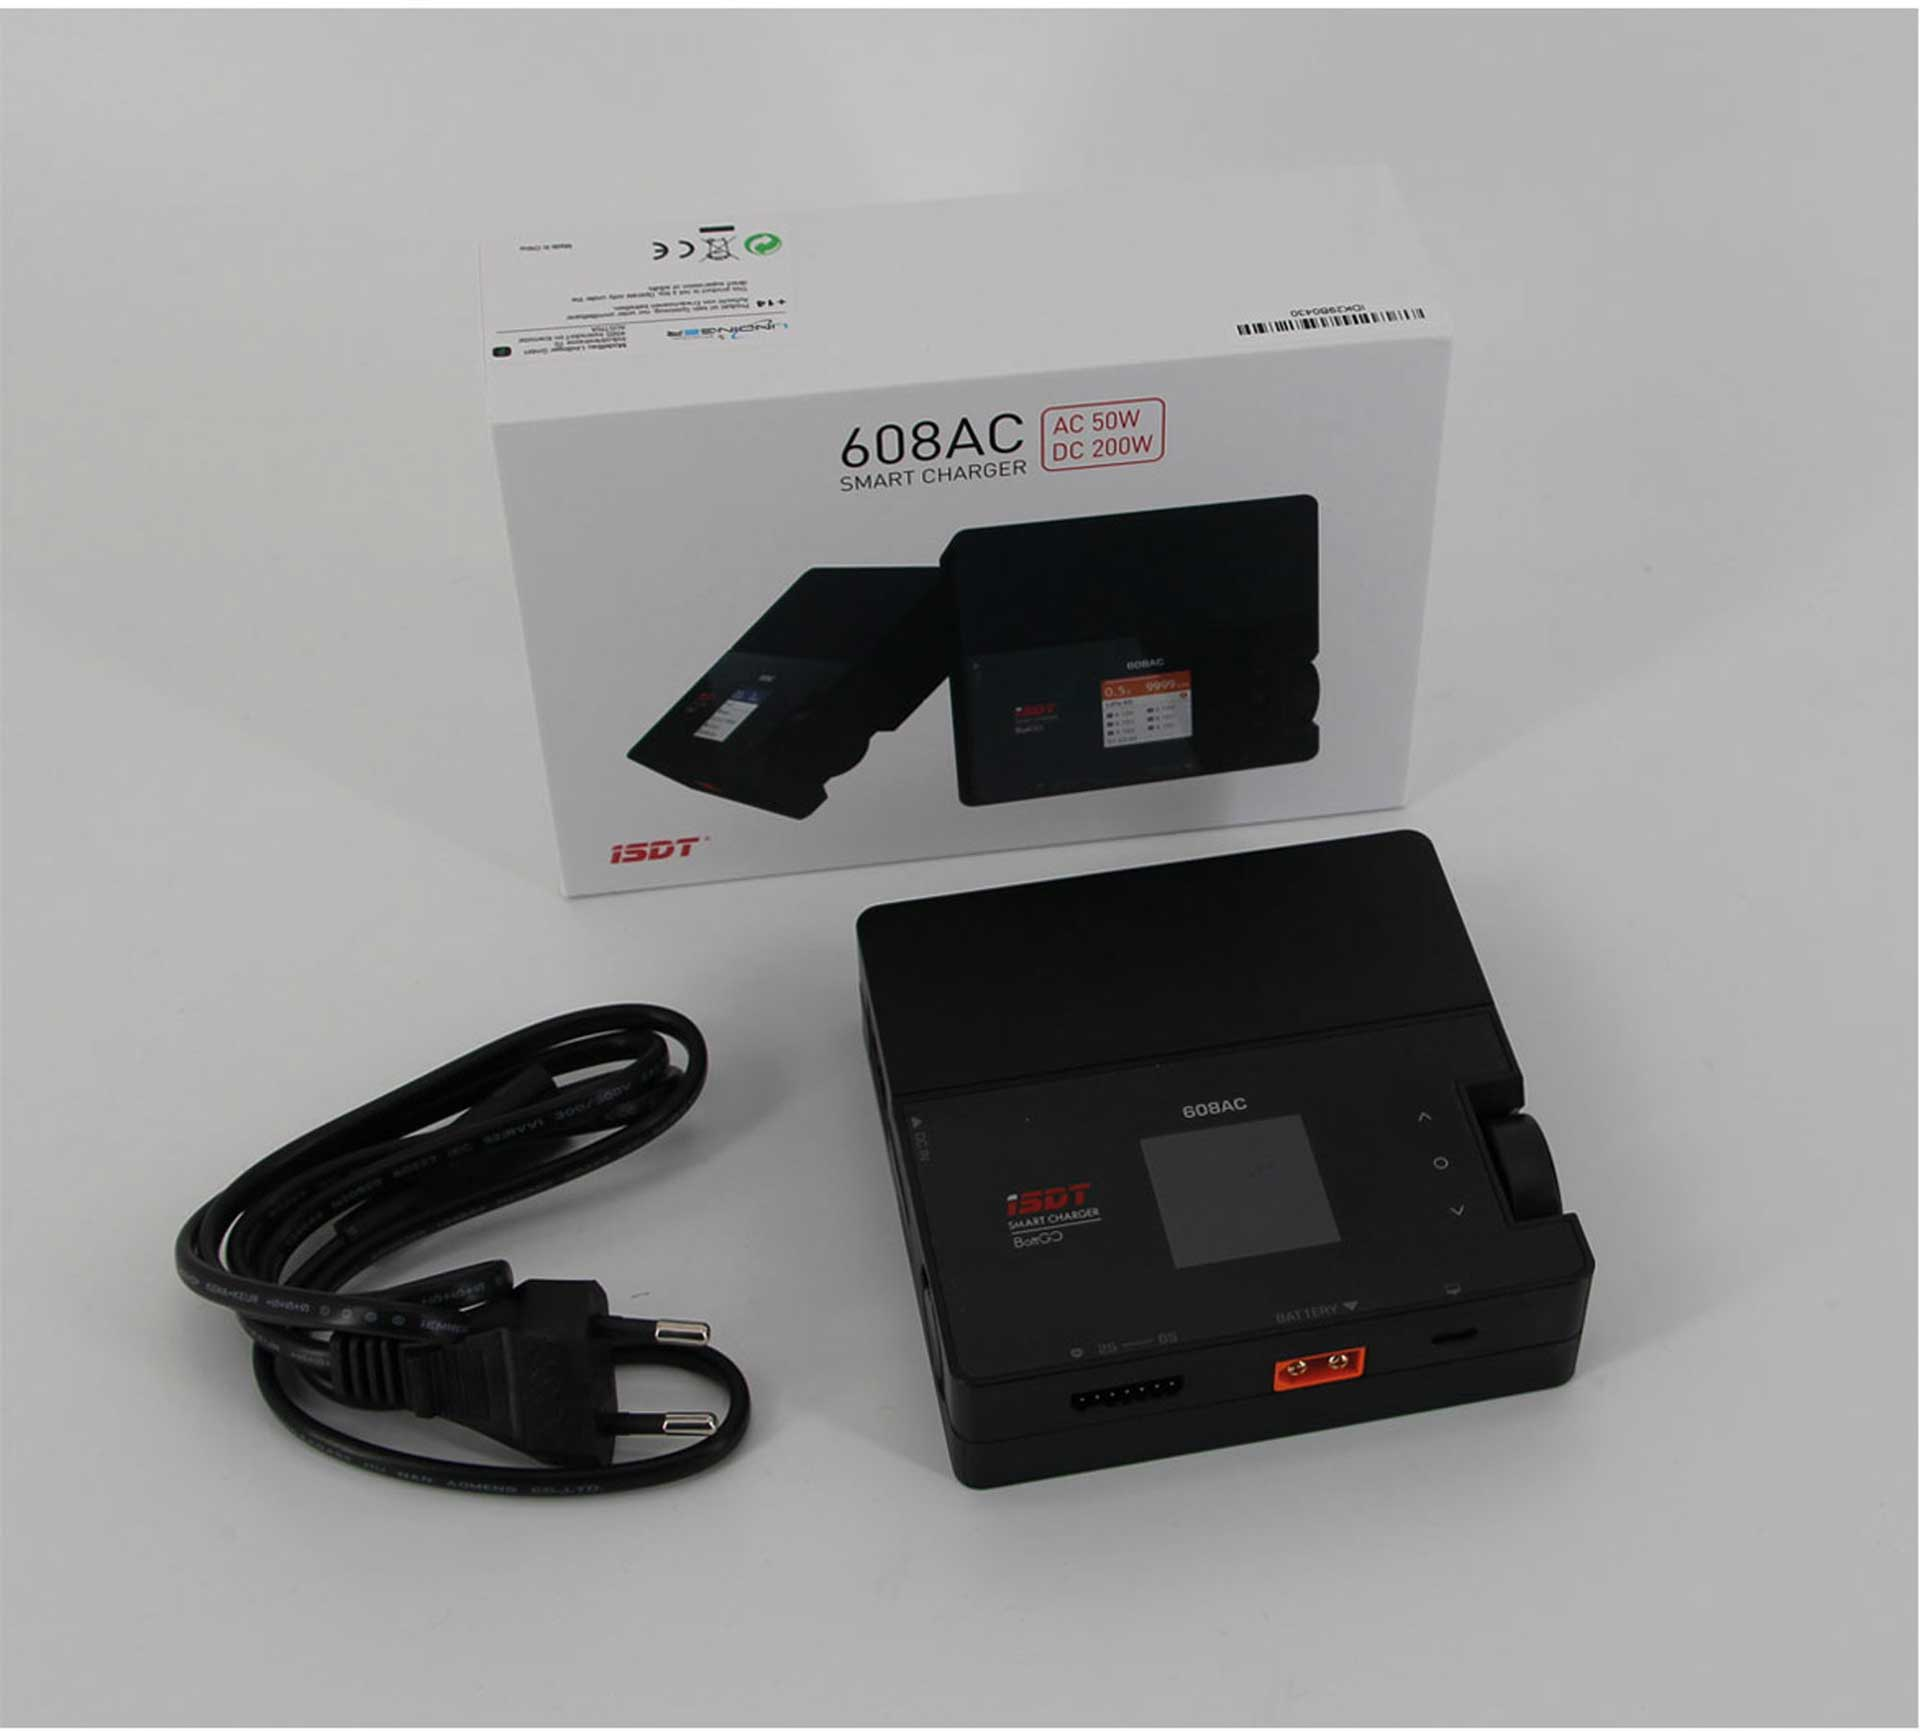 ISDT 608AC SMART CHARGER AC/DC 60/200W BATTGO™ READY -8Q 1-6S LOADER